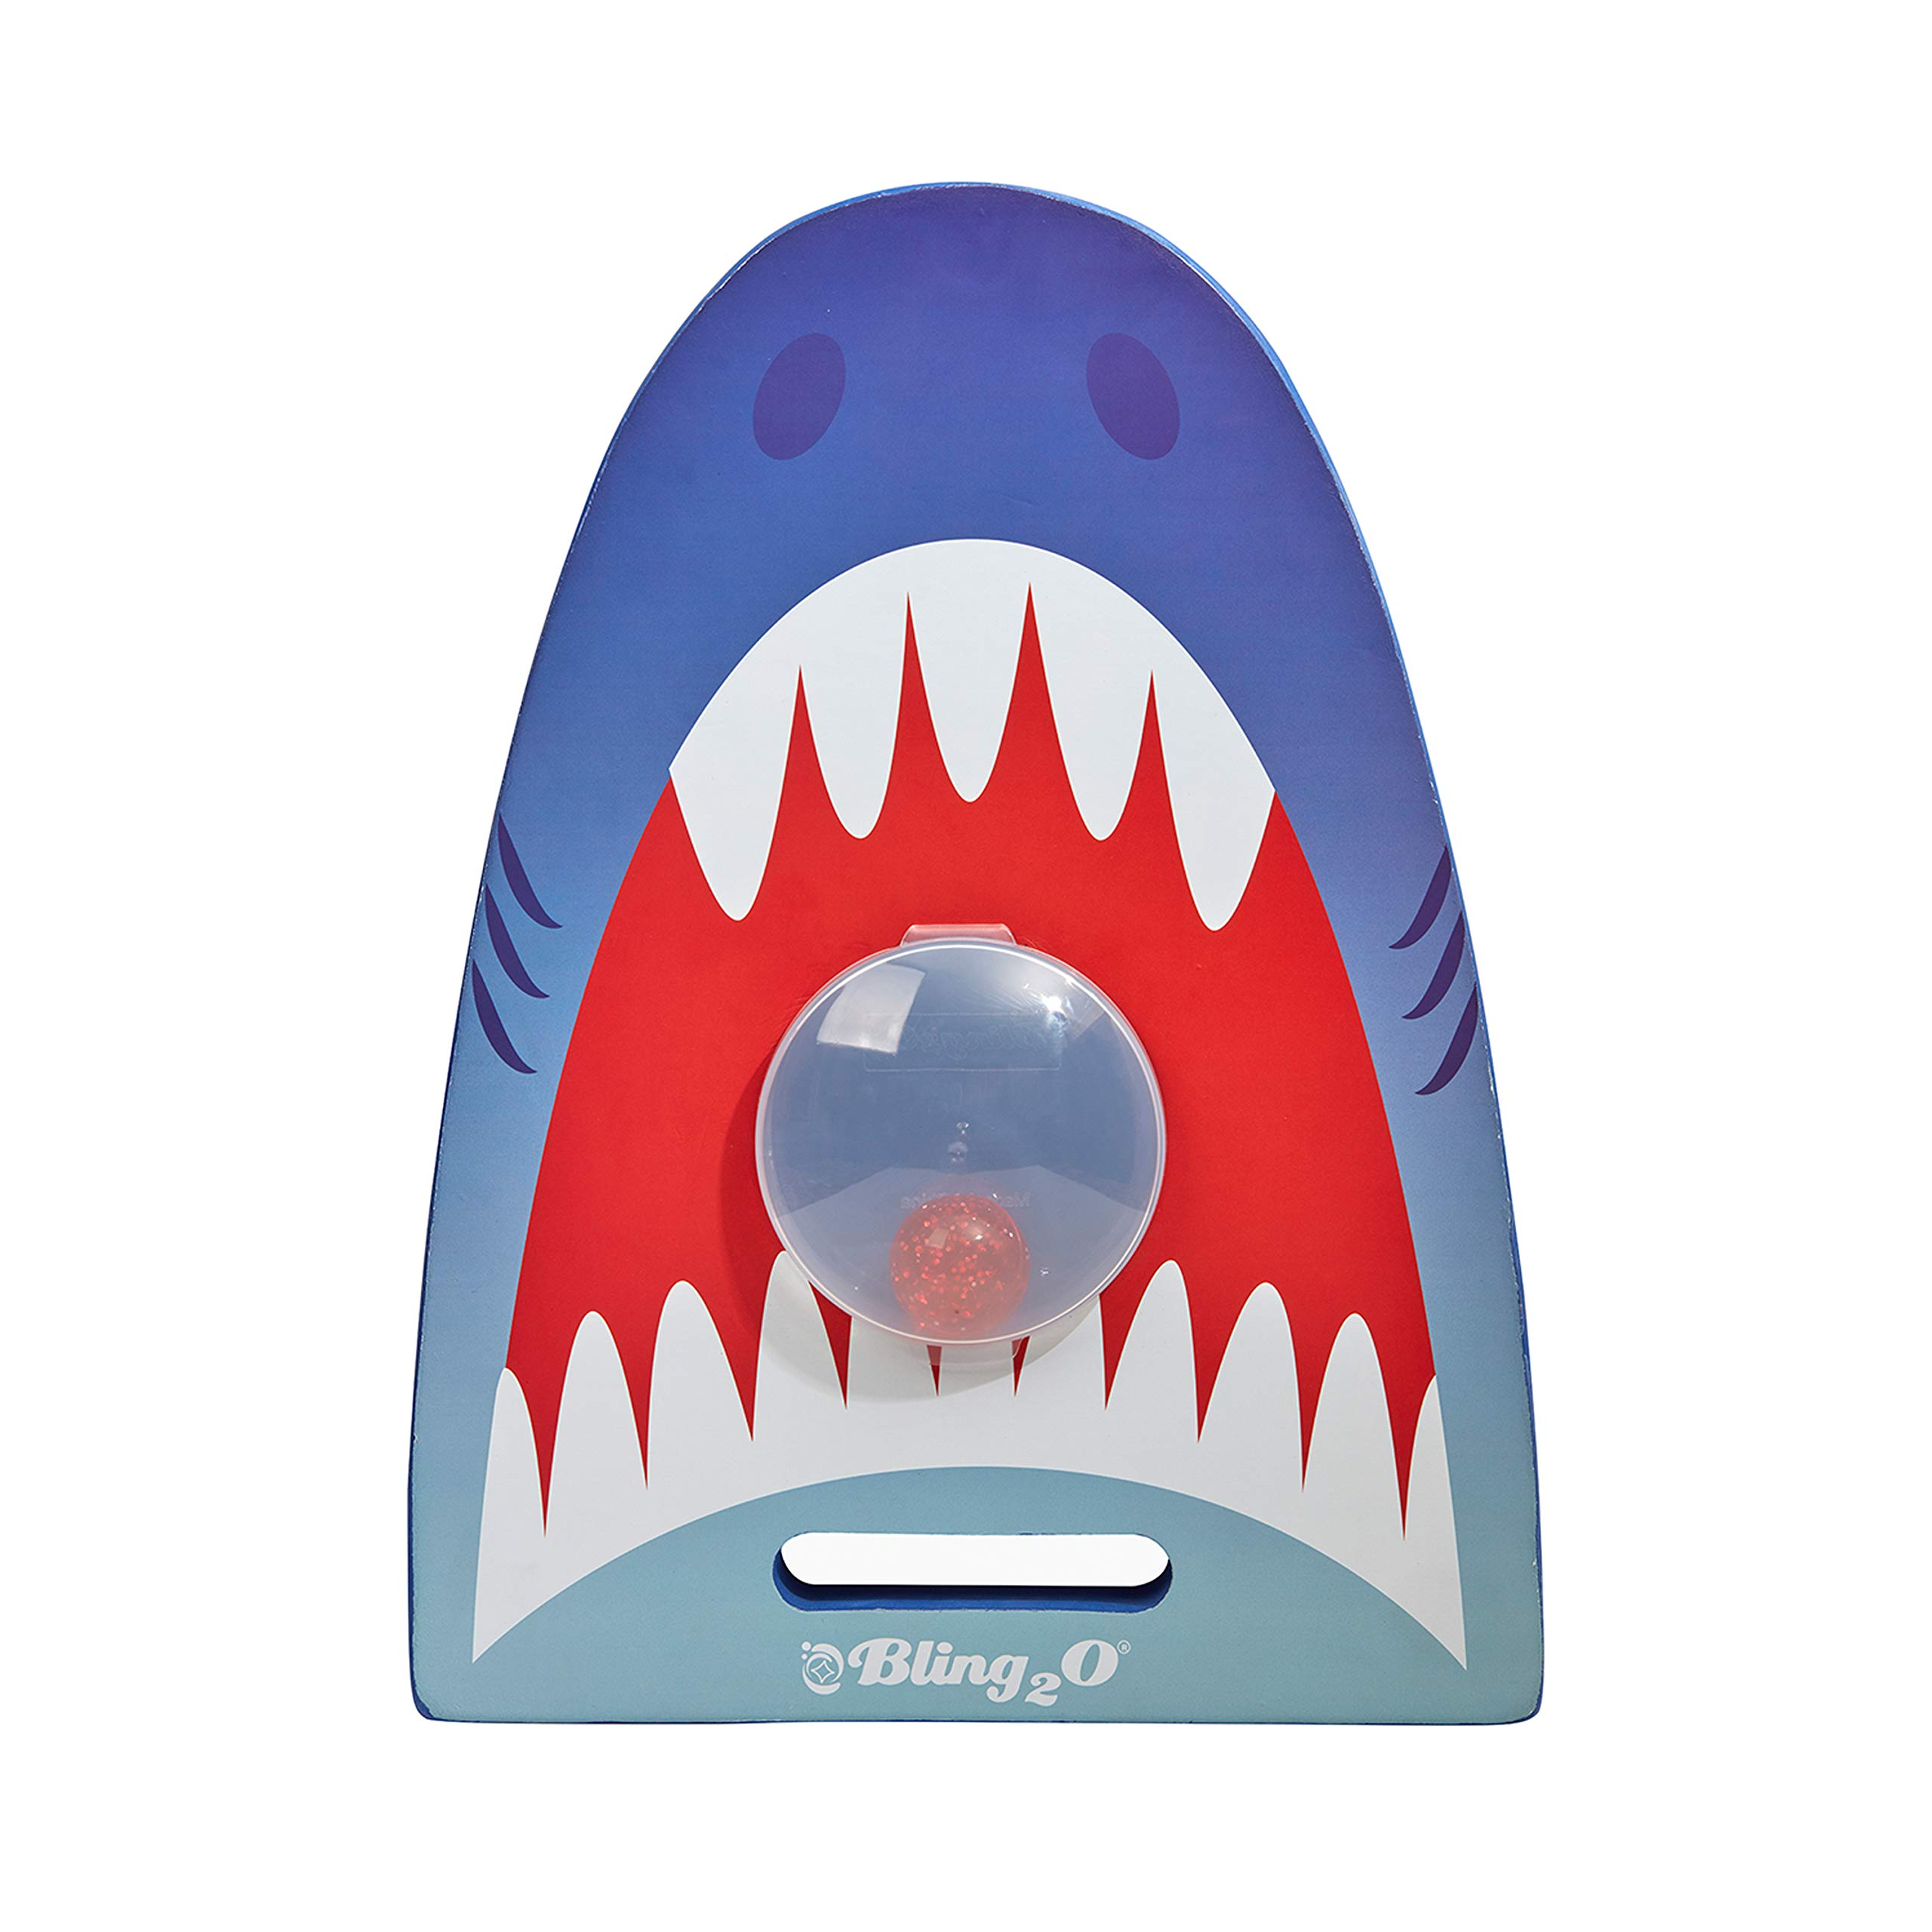 Shark Kickboard for Kids by Bling2O Includes Bonus Dive Toy - Great for Swim Lessons (Blue Tip Shark)